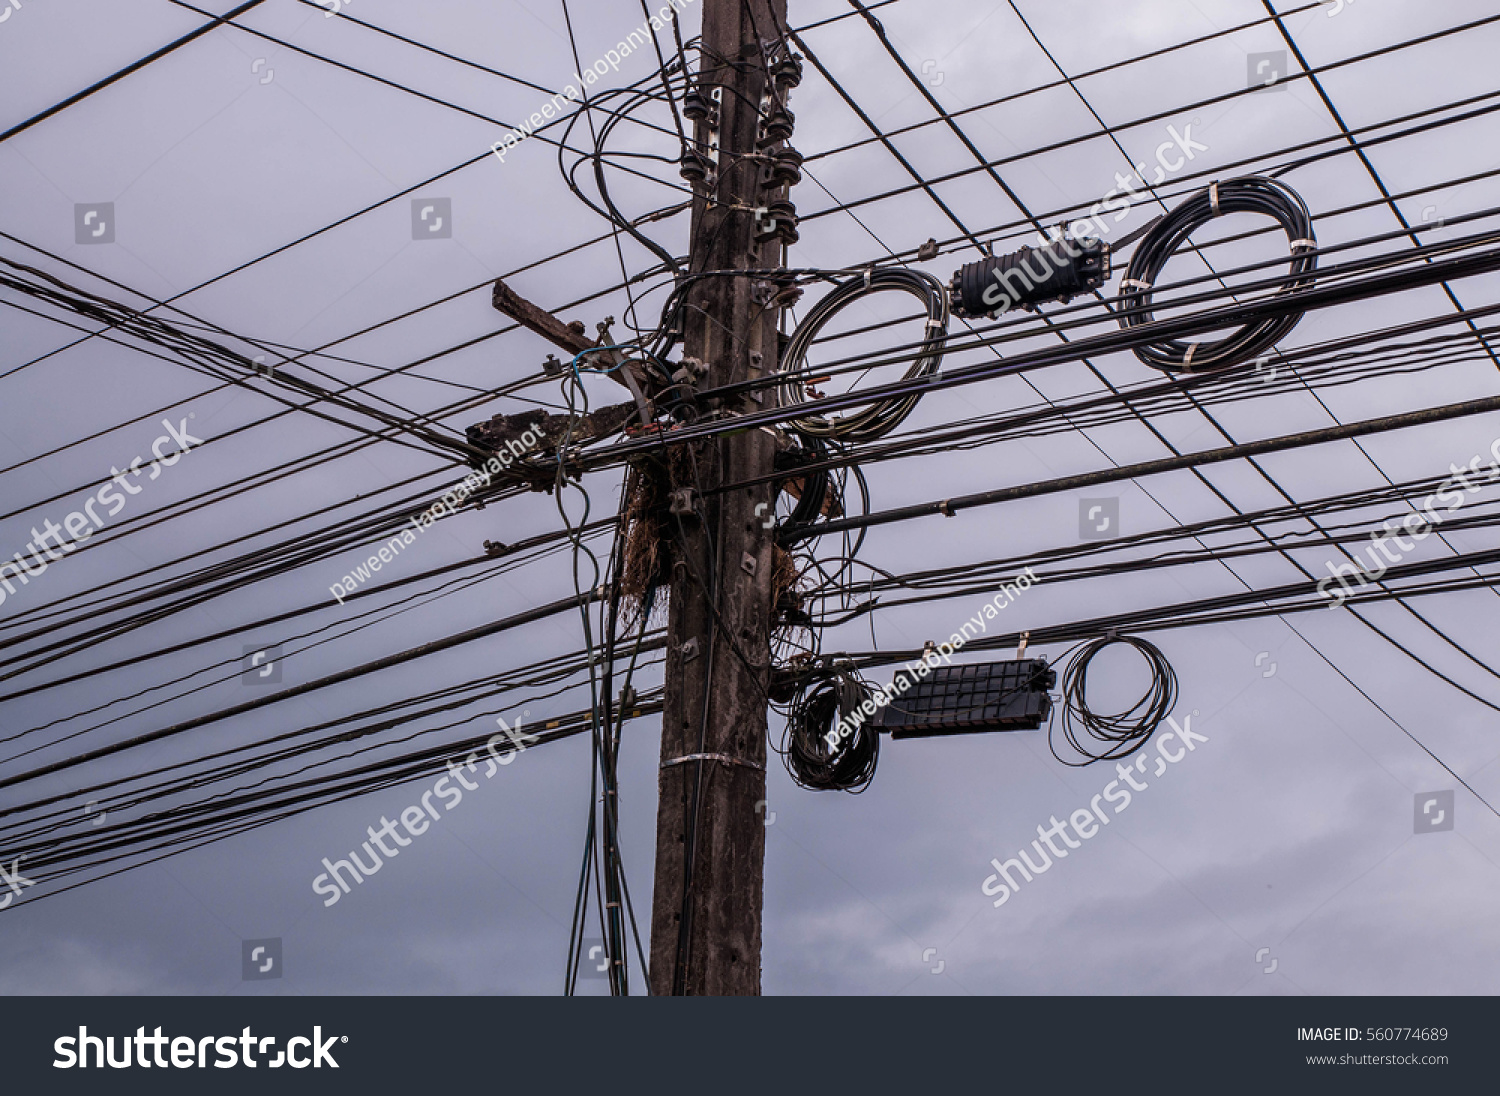 hight resolution of electric poles and electric wire with blue sky electric pole with electric wire tangled